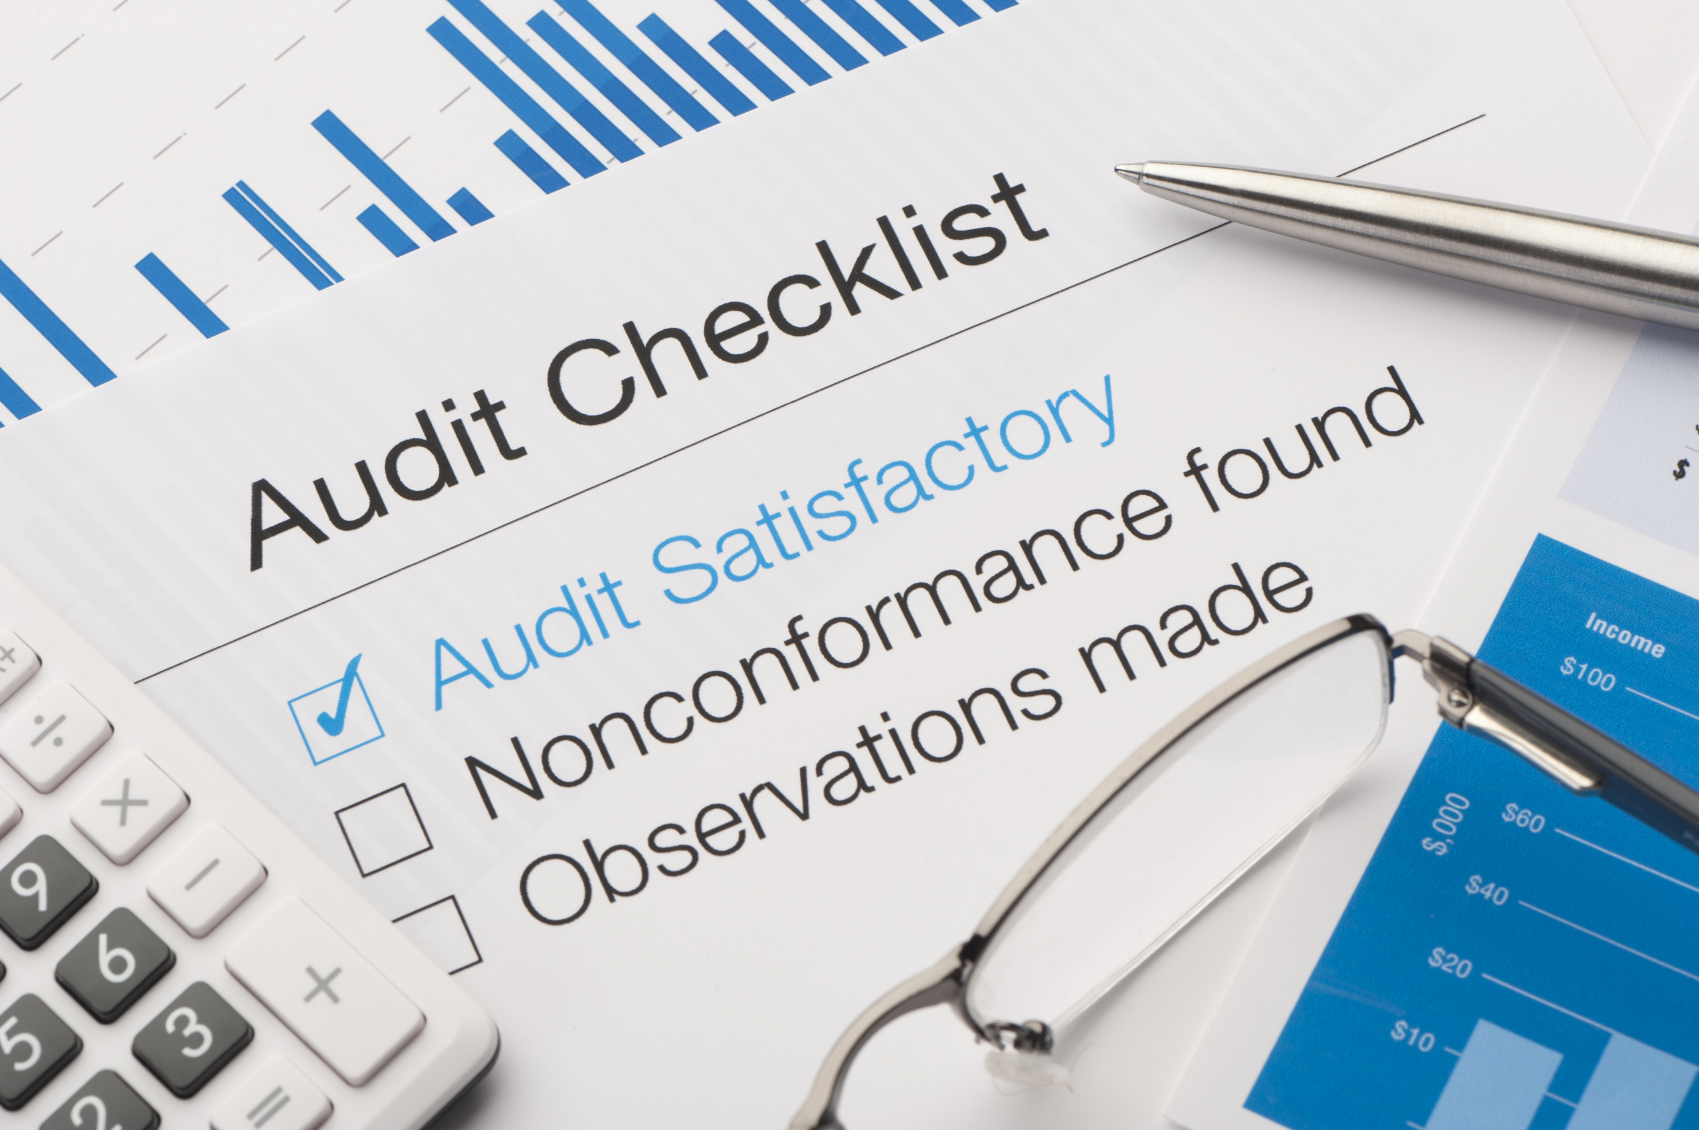 Audit-an-important-tool-for-successful-franchising